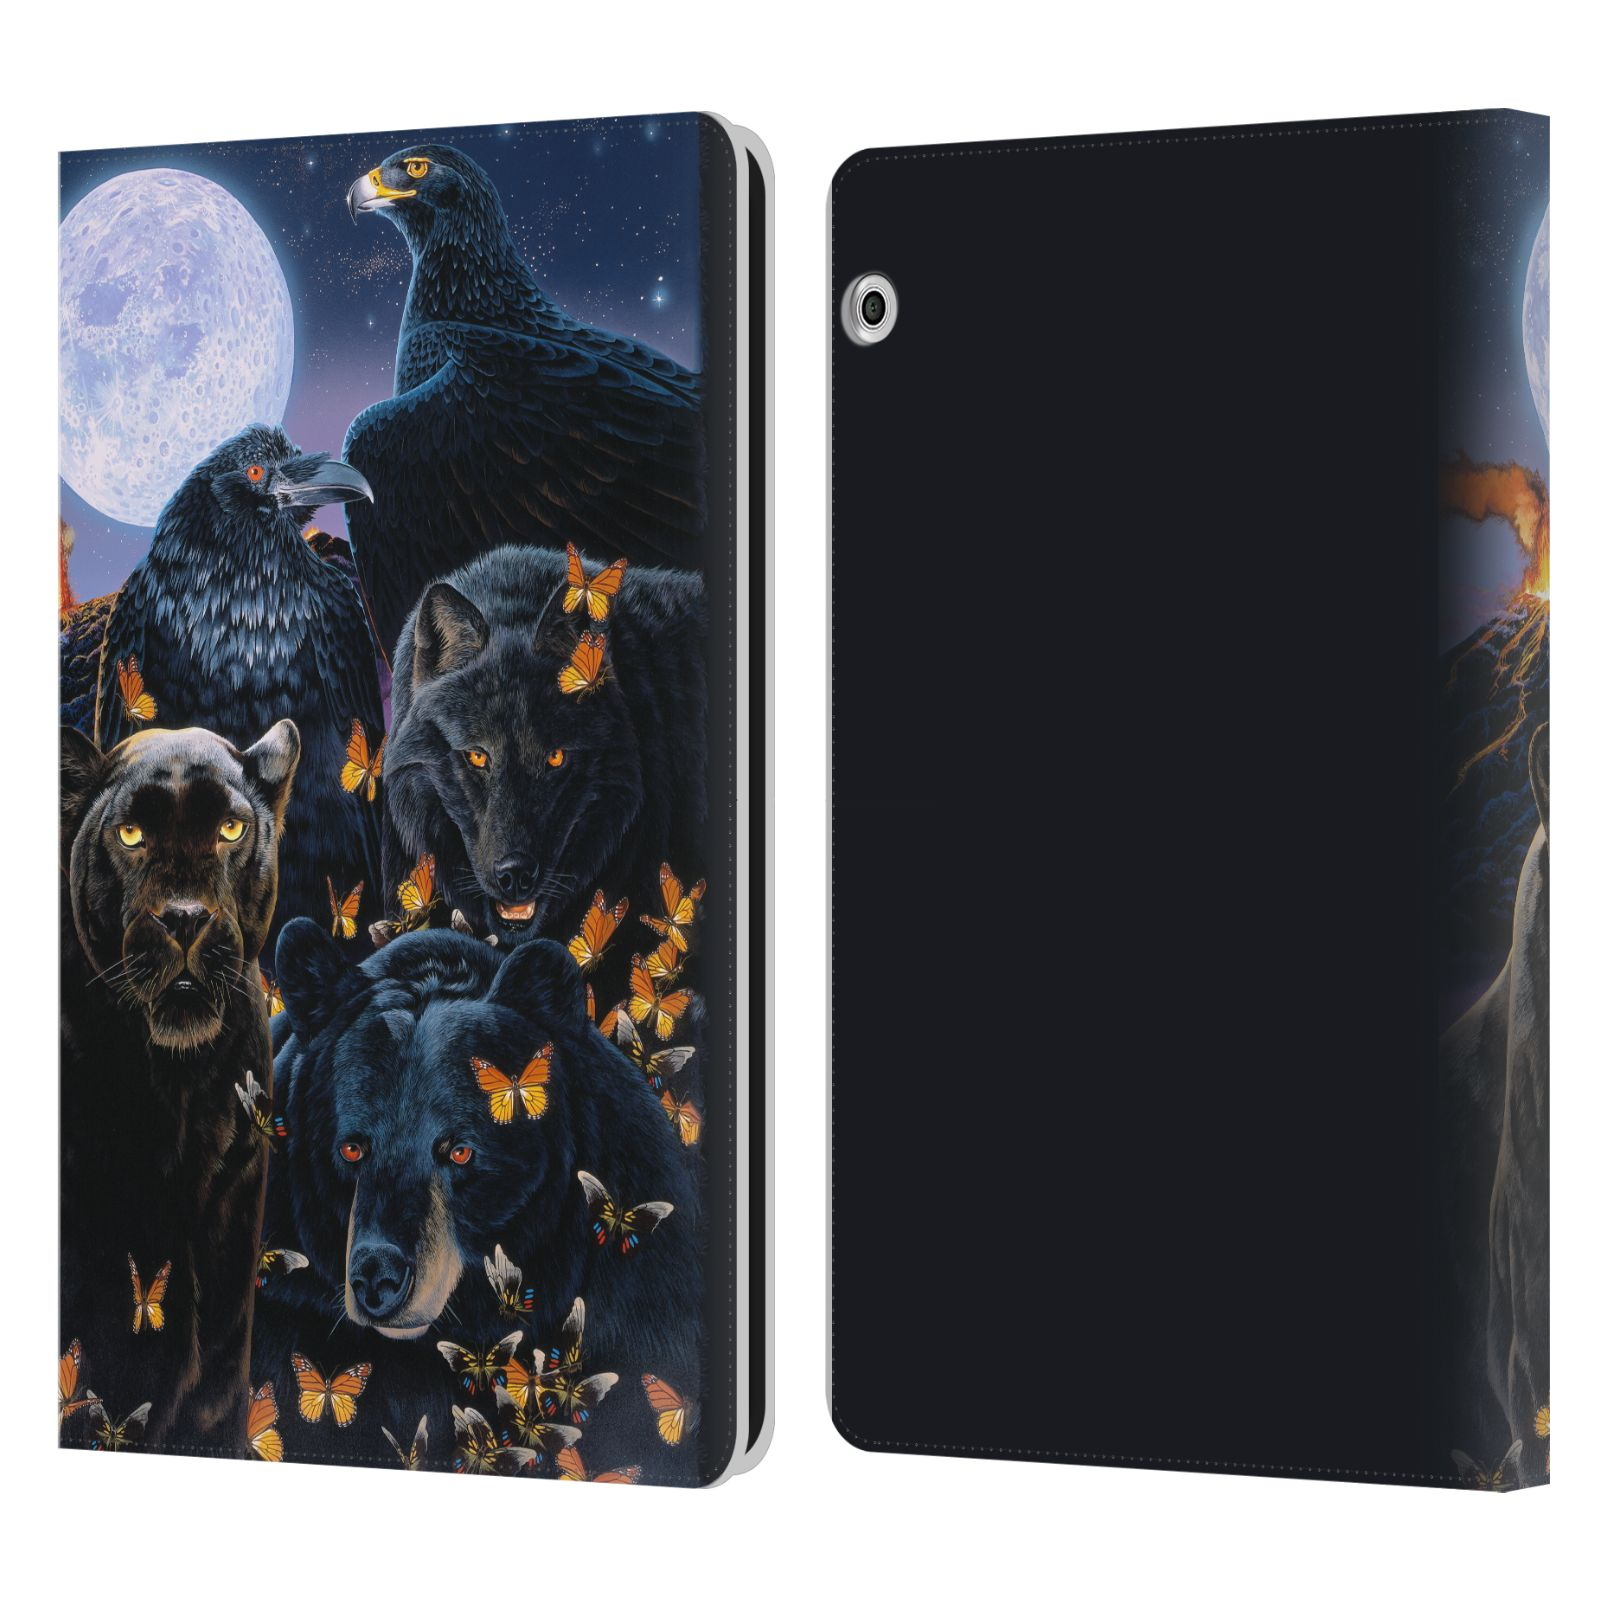 Official Graeme Stevenson Wildlife Black Animals 2 Leather Book Wallet Case For Huawei MediaPad T3 10